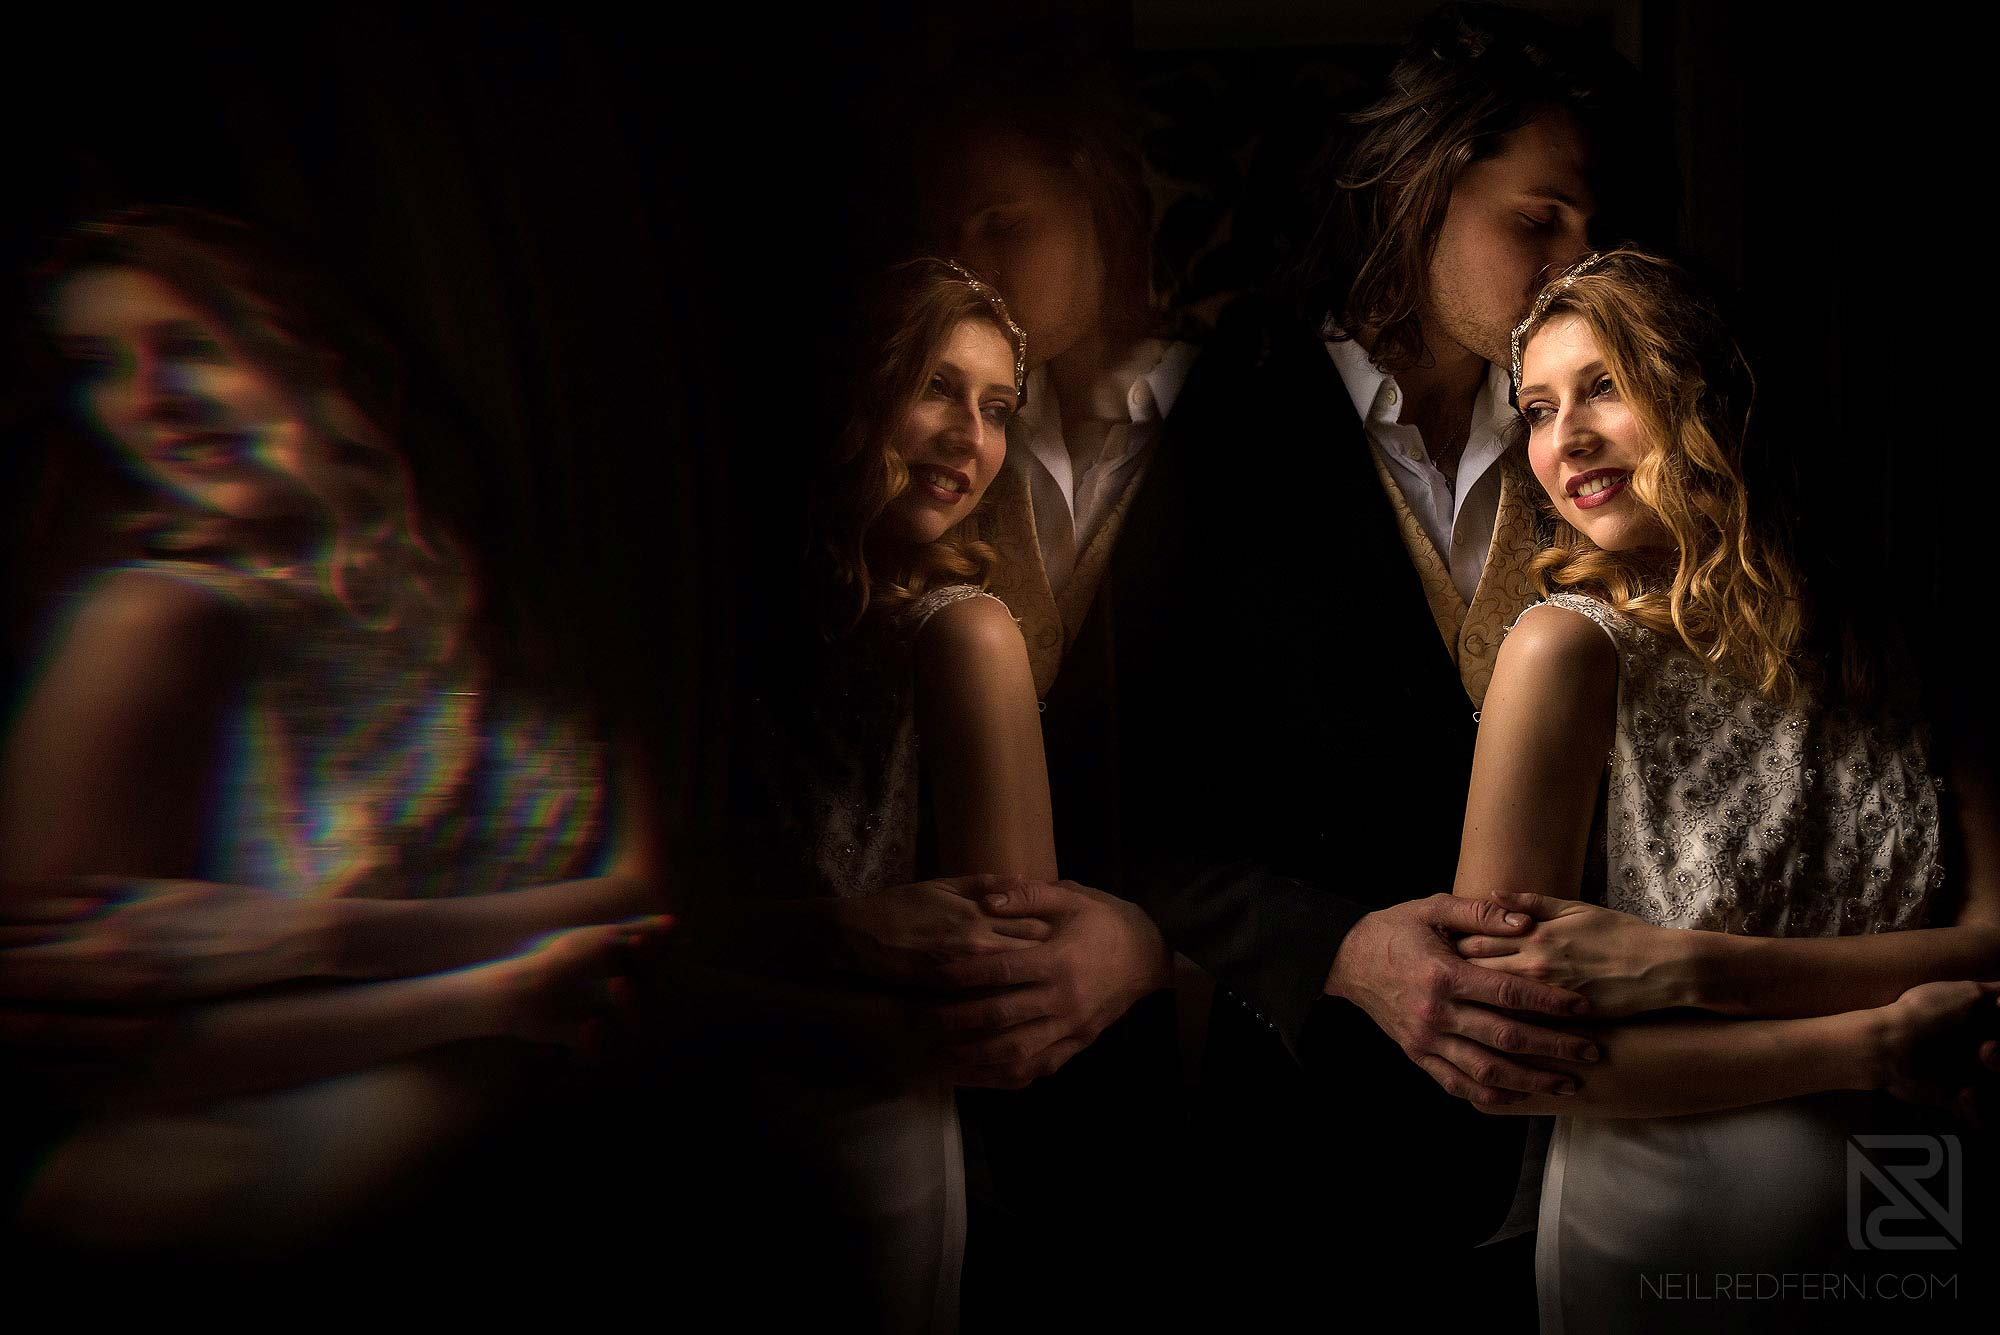 creative photograph of bride and groom taken in natural window light